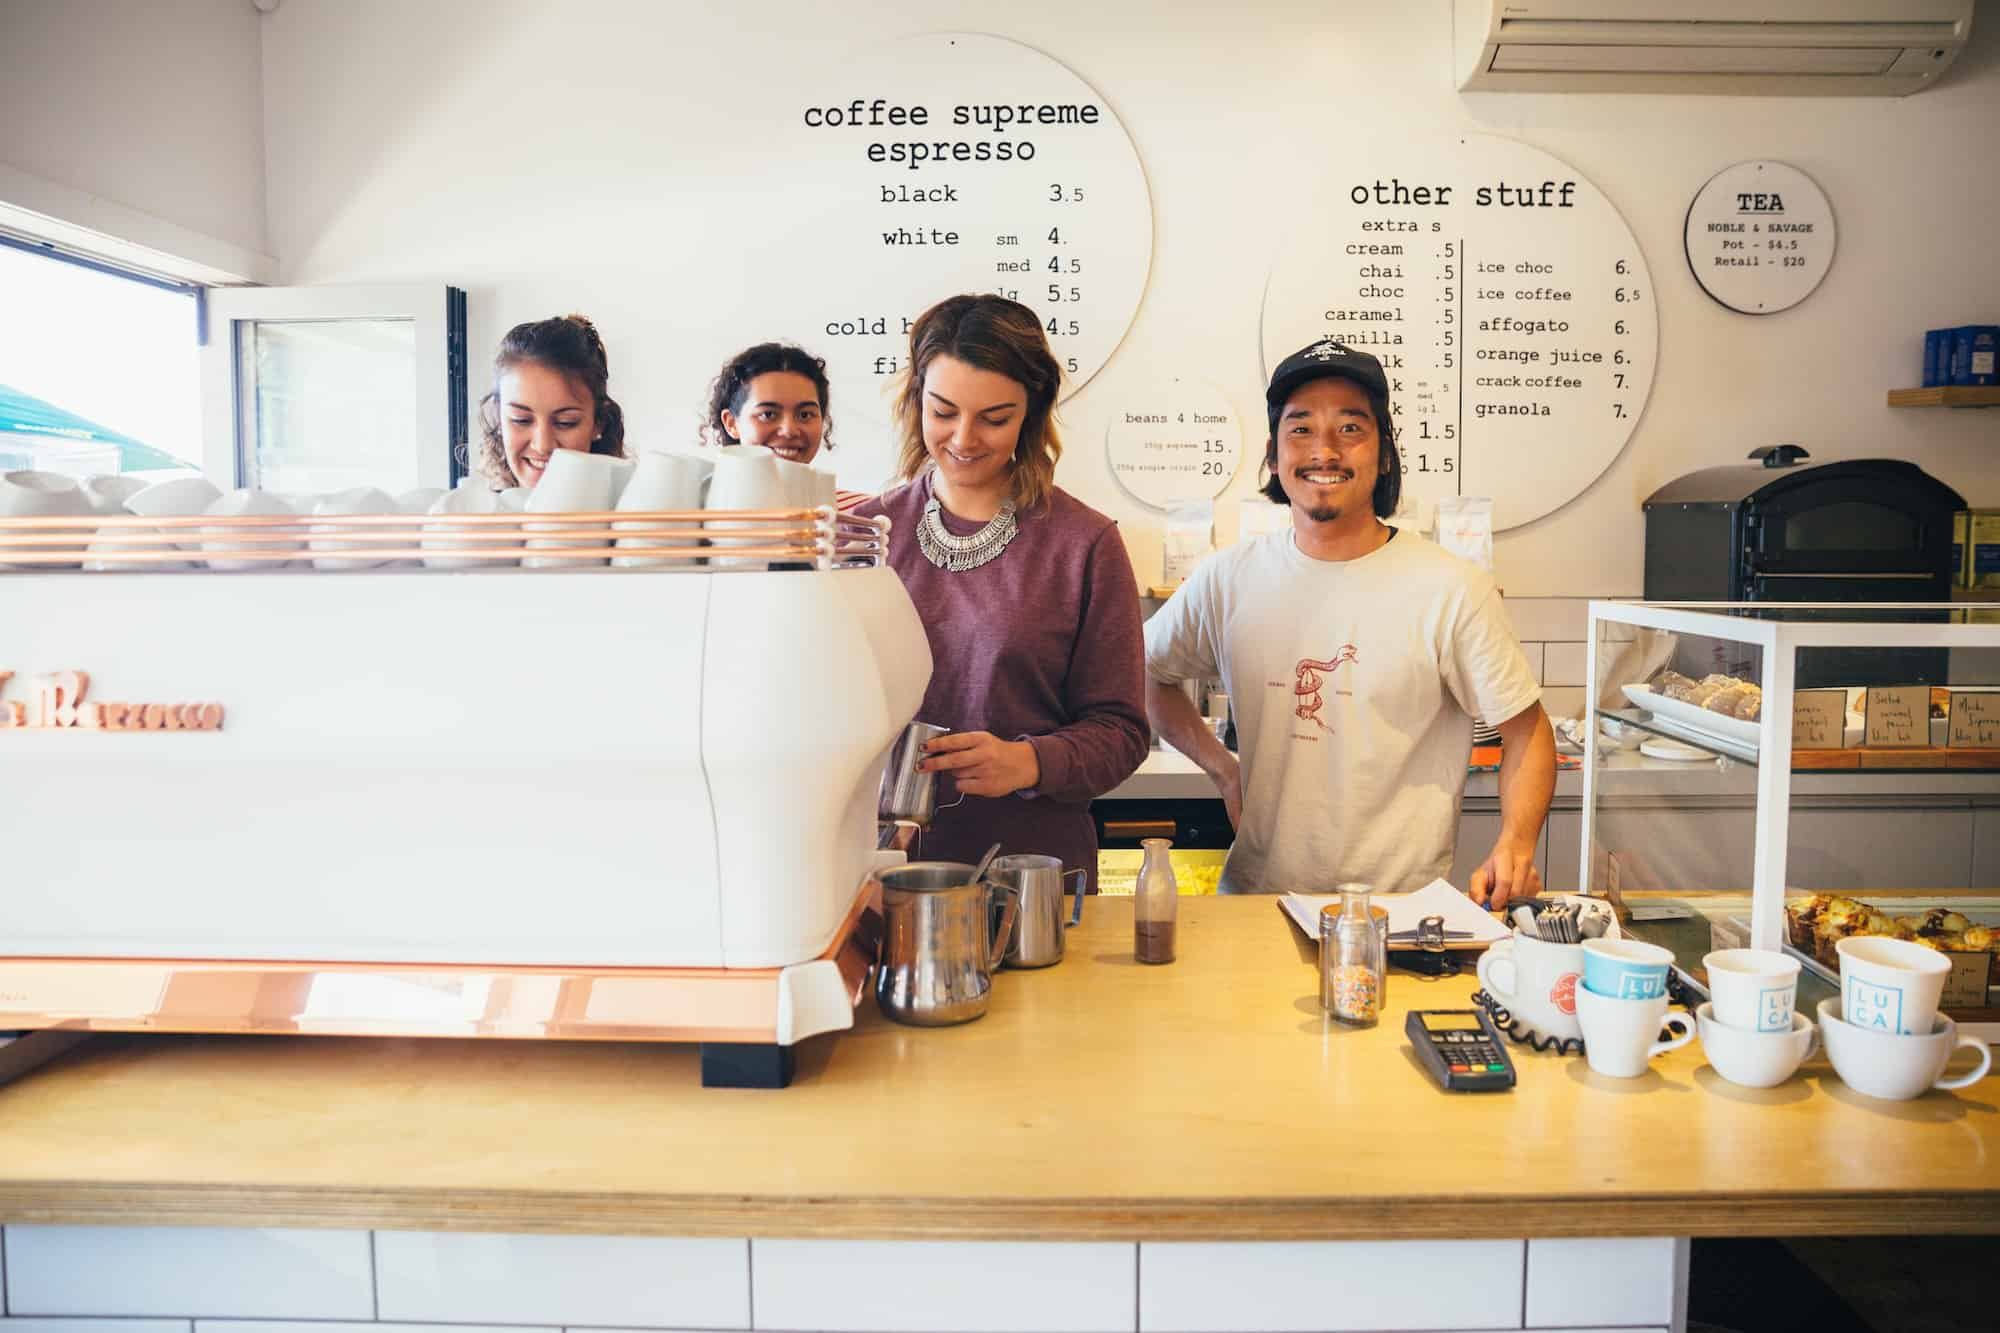 young people working and smiling behind coffee shop counter